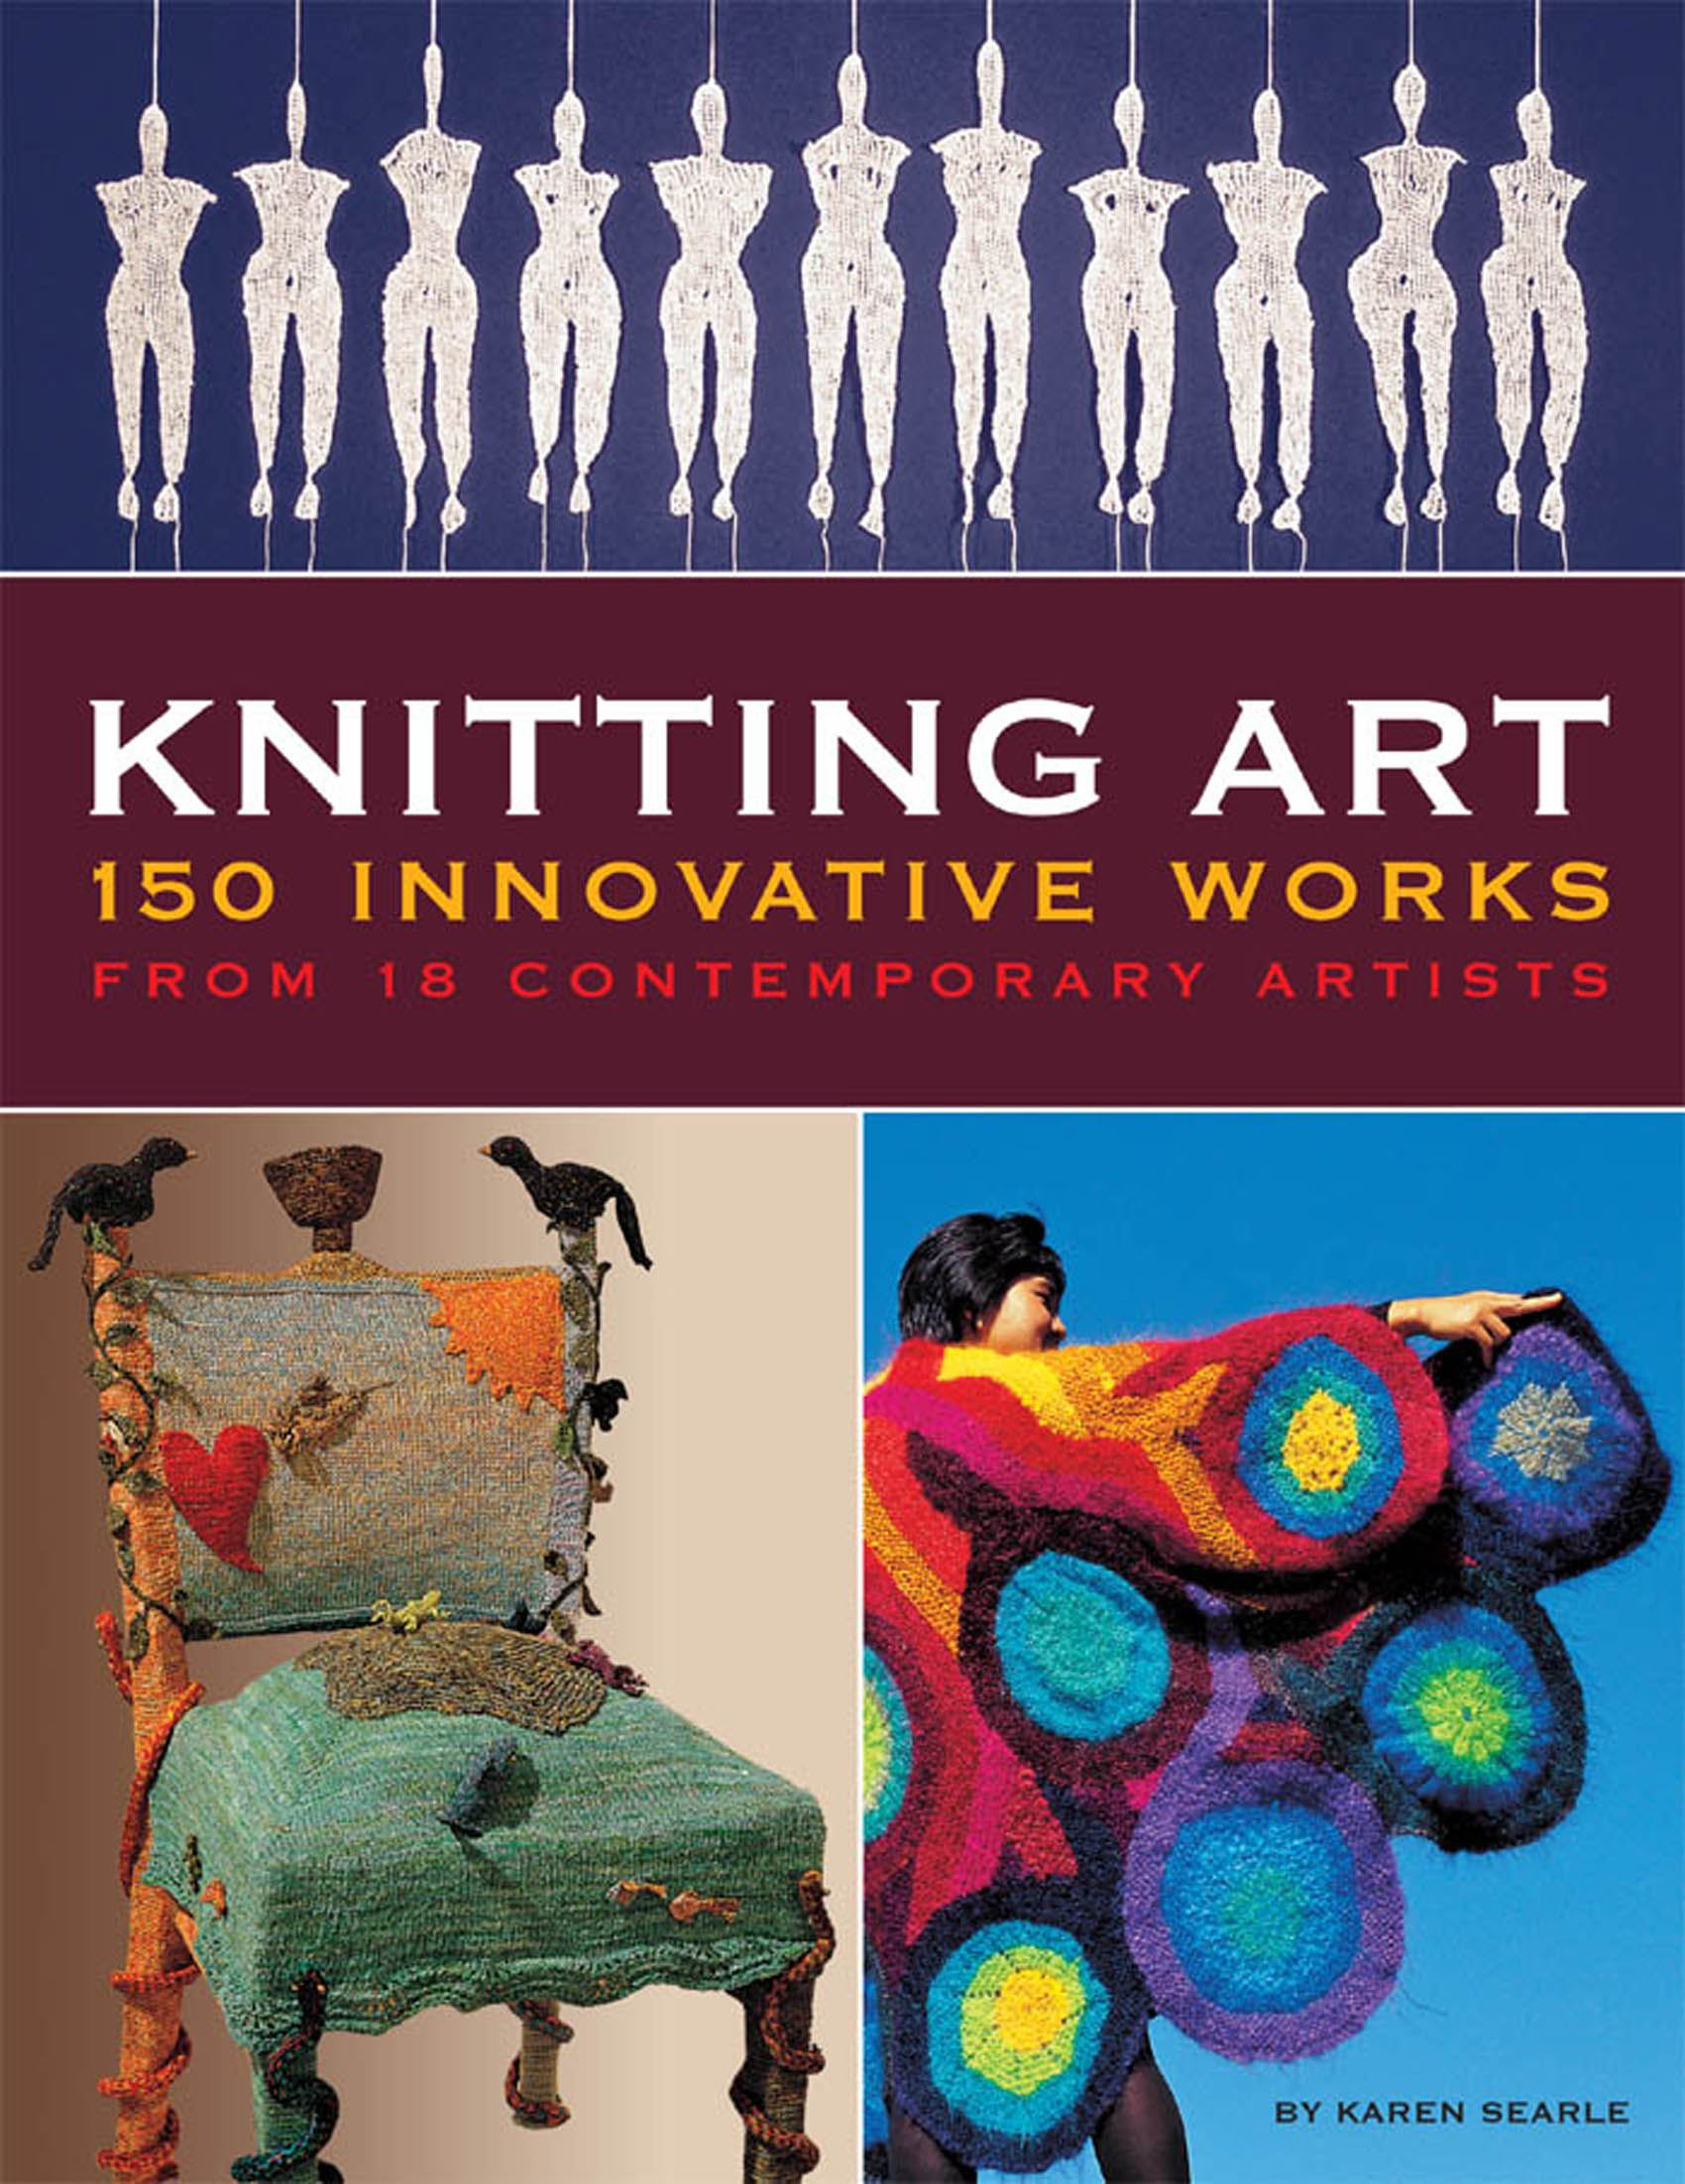 Knitting Art: 150 Innovative Works from 18 Contemporary Artists By: Karen Searle